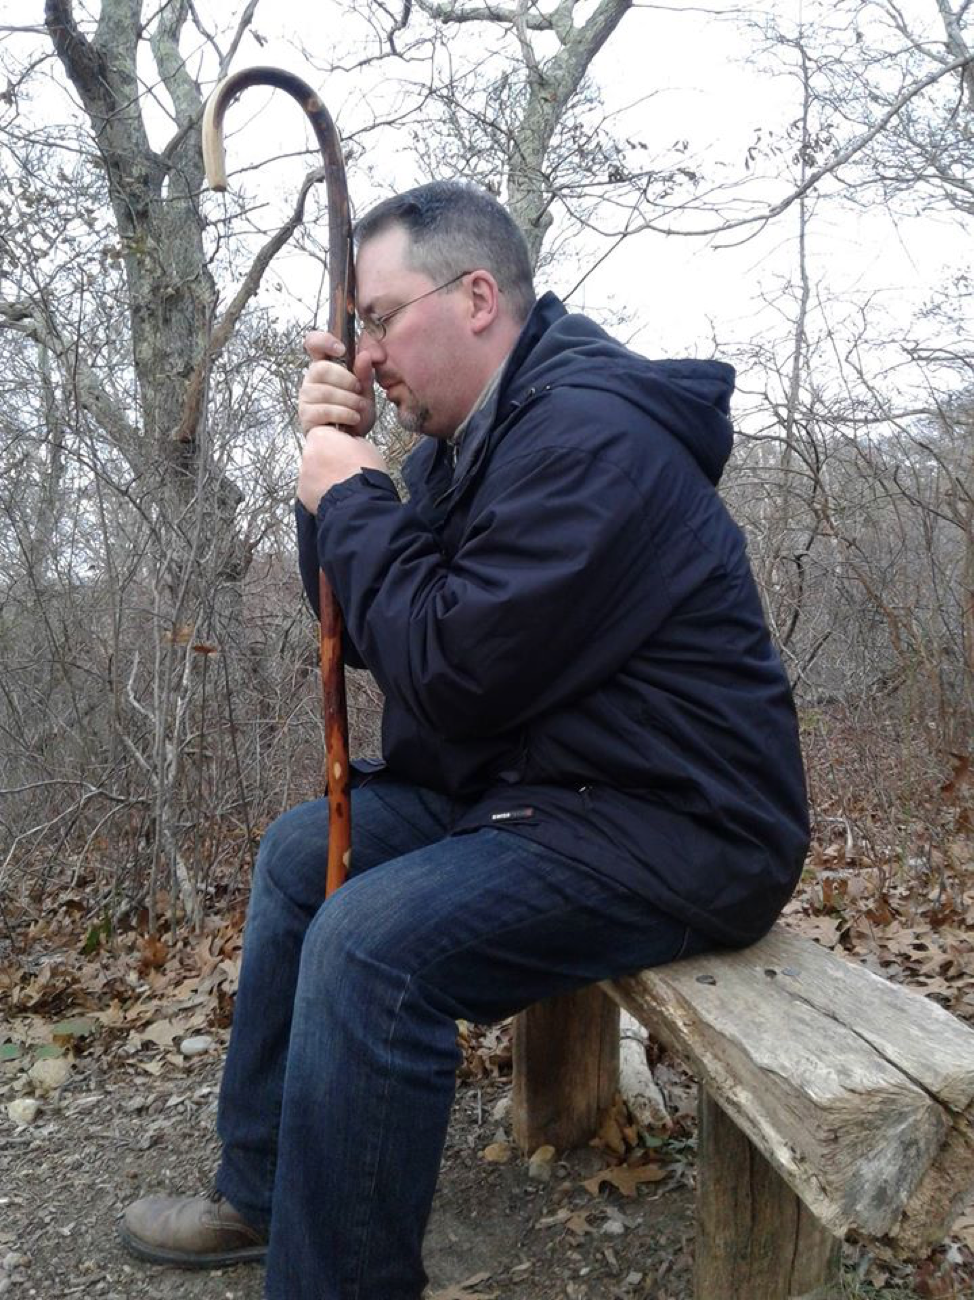 A capture of my husband in prayer as he rests on the trail...